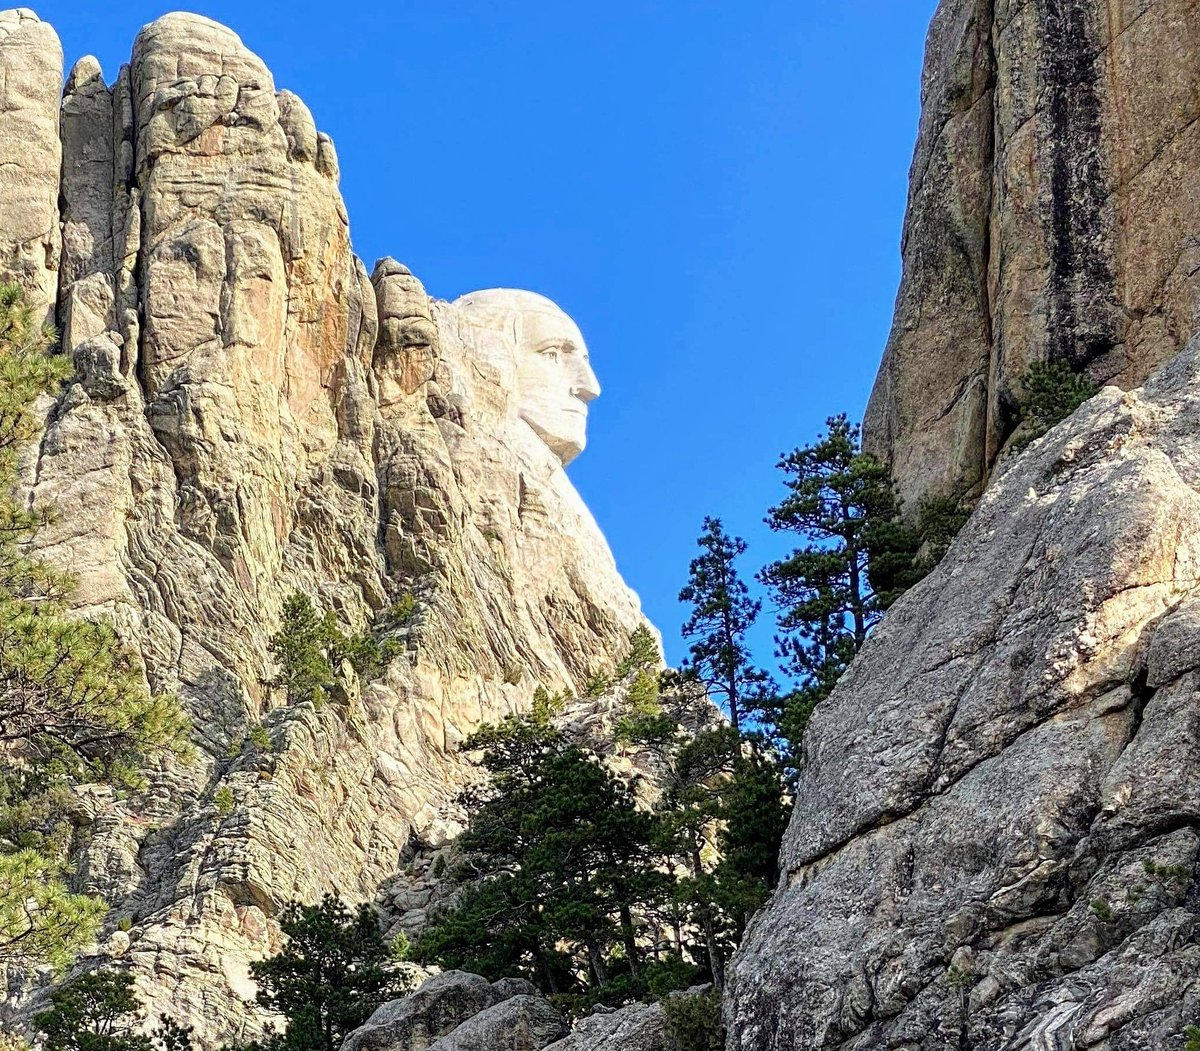 Love this perspective of Mount Rushmore in South Dakota USA. #huseonica https://t.co/GYX6MNQii8